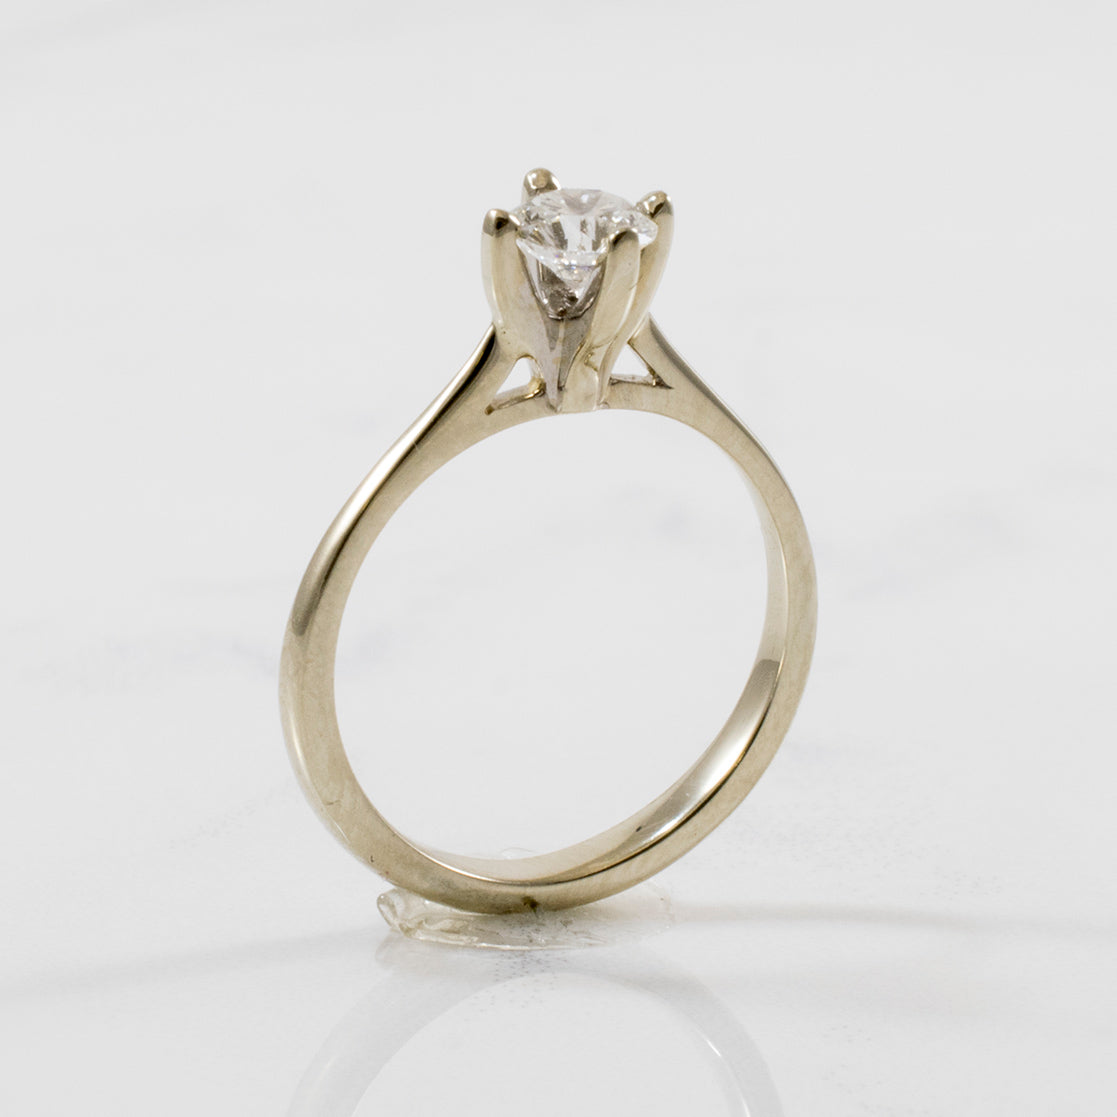 'Birks' Nordic Light Solitaire Engagement Ring | 0.36ct | SZ 4.25 |